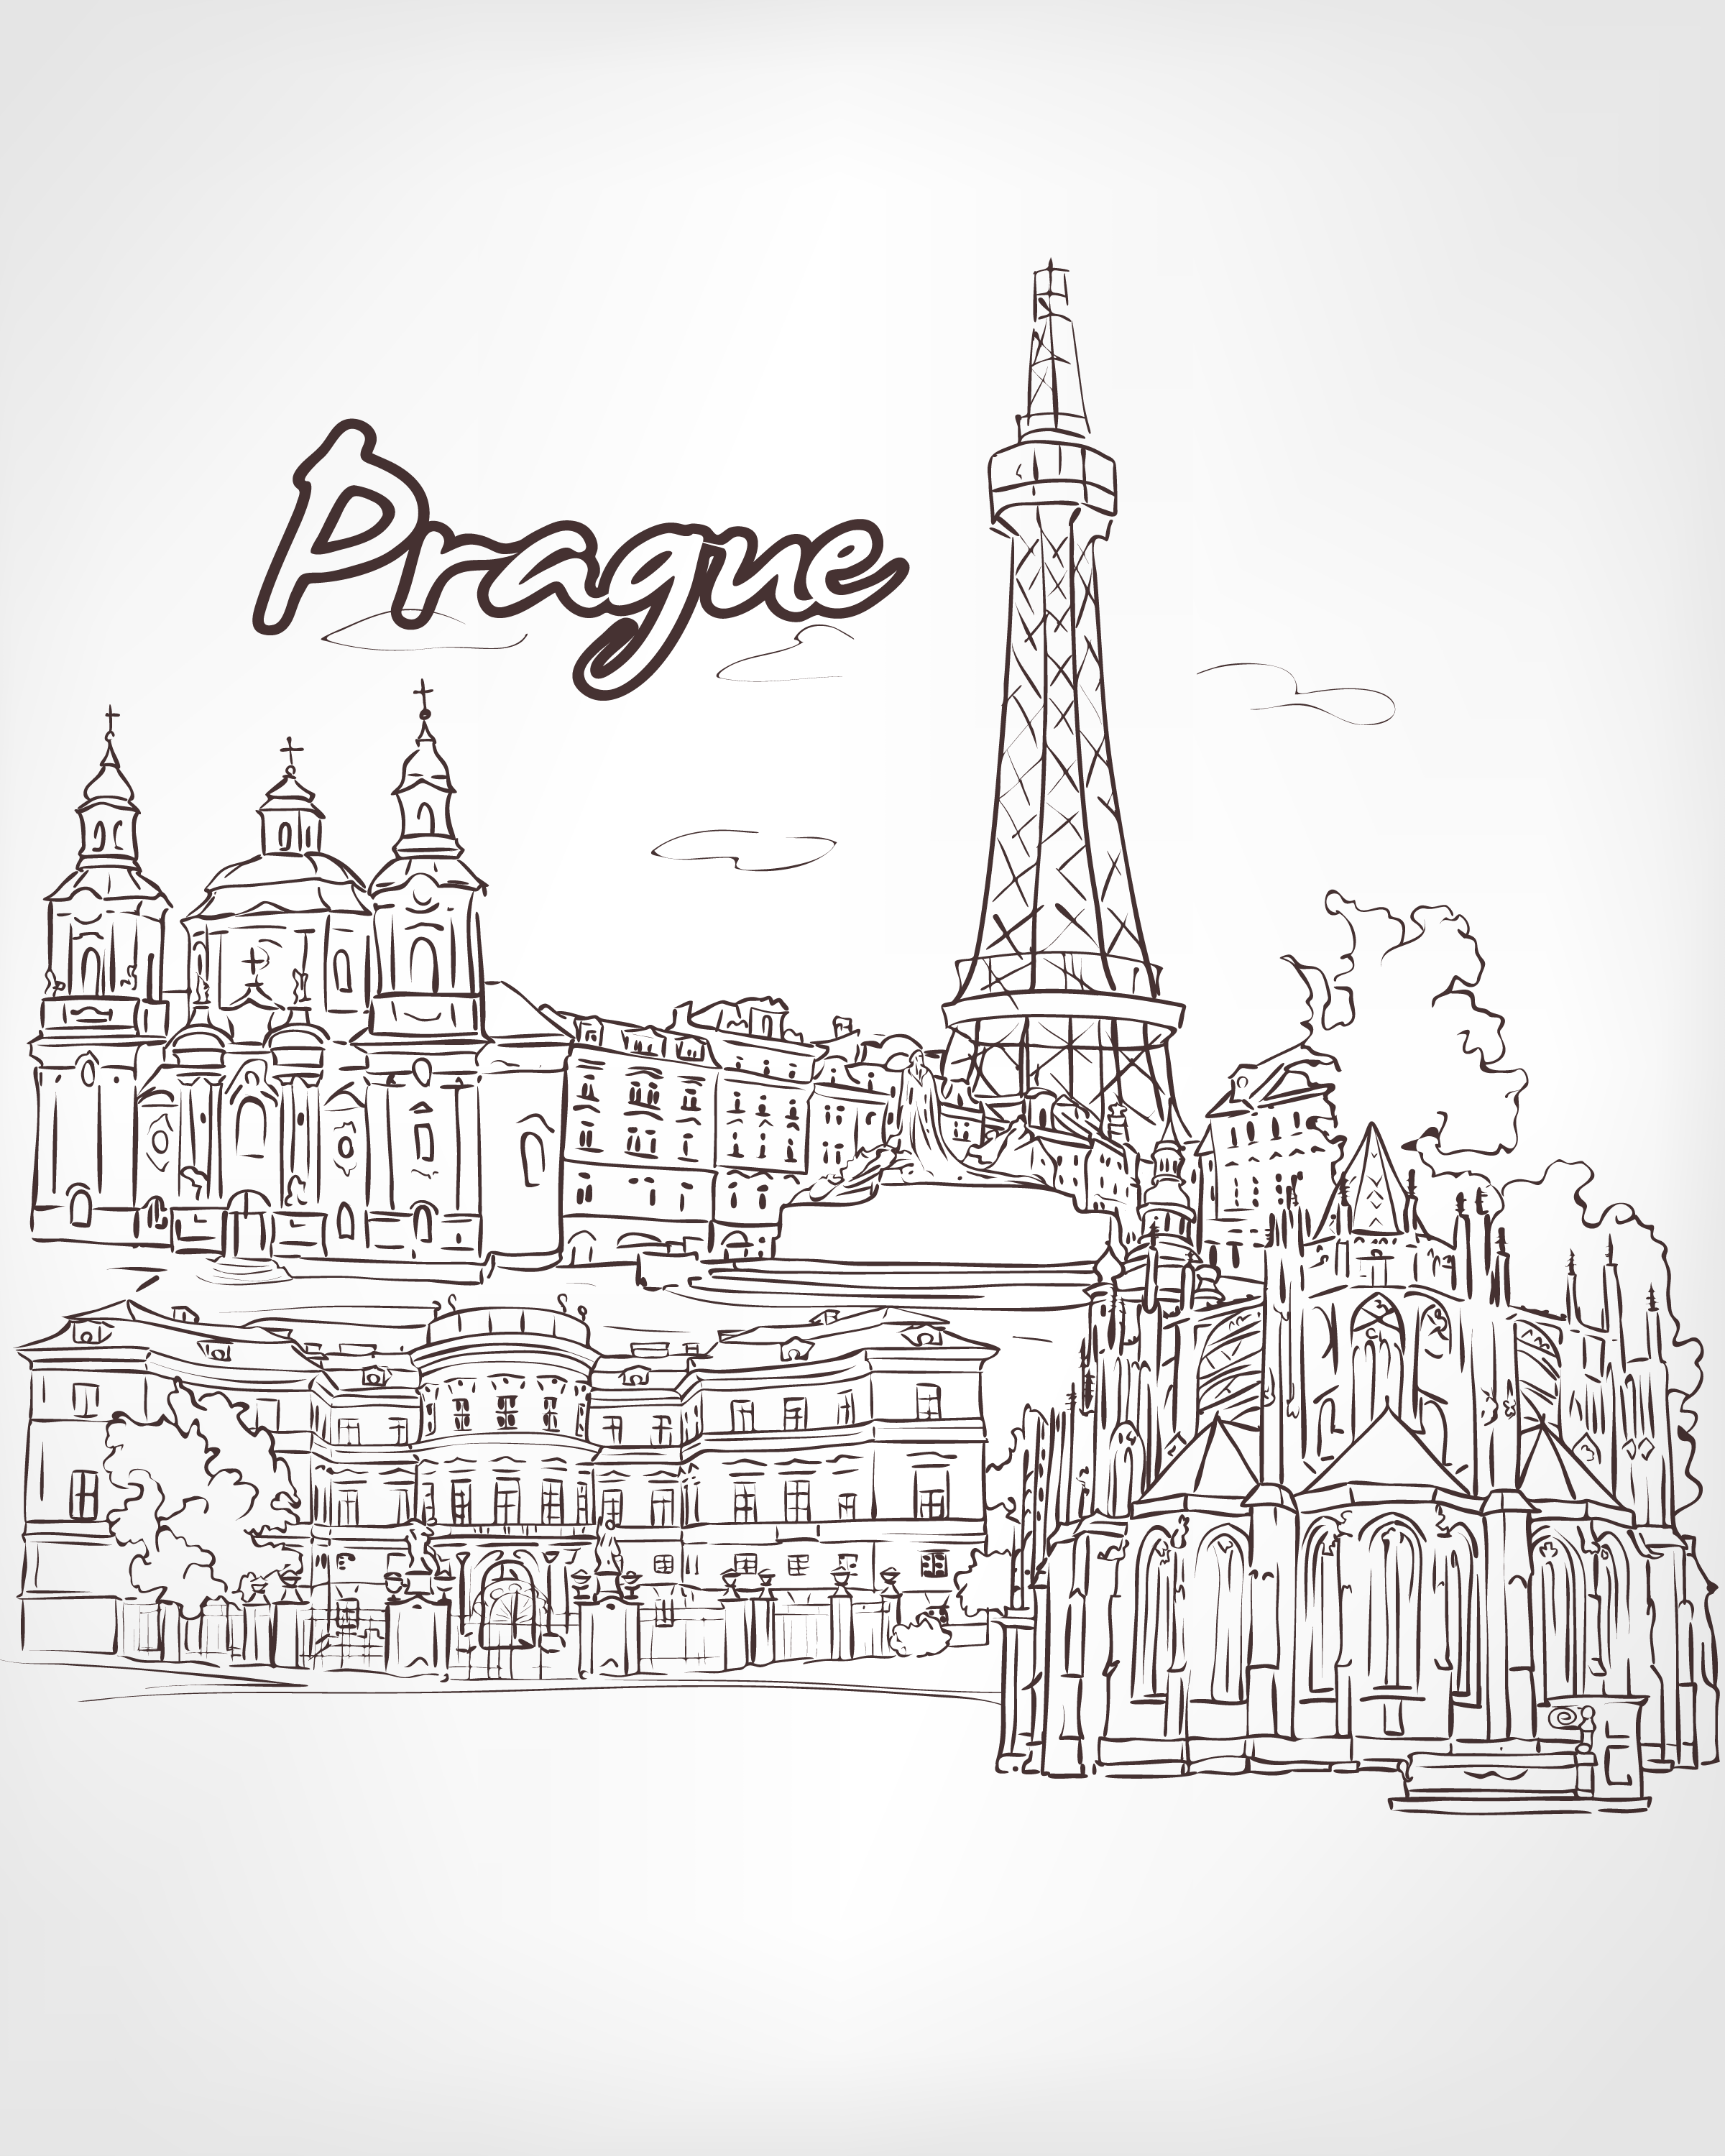 Amazing Cities Adult Coloring Pages City scapes Around The